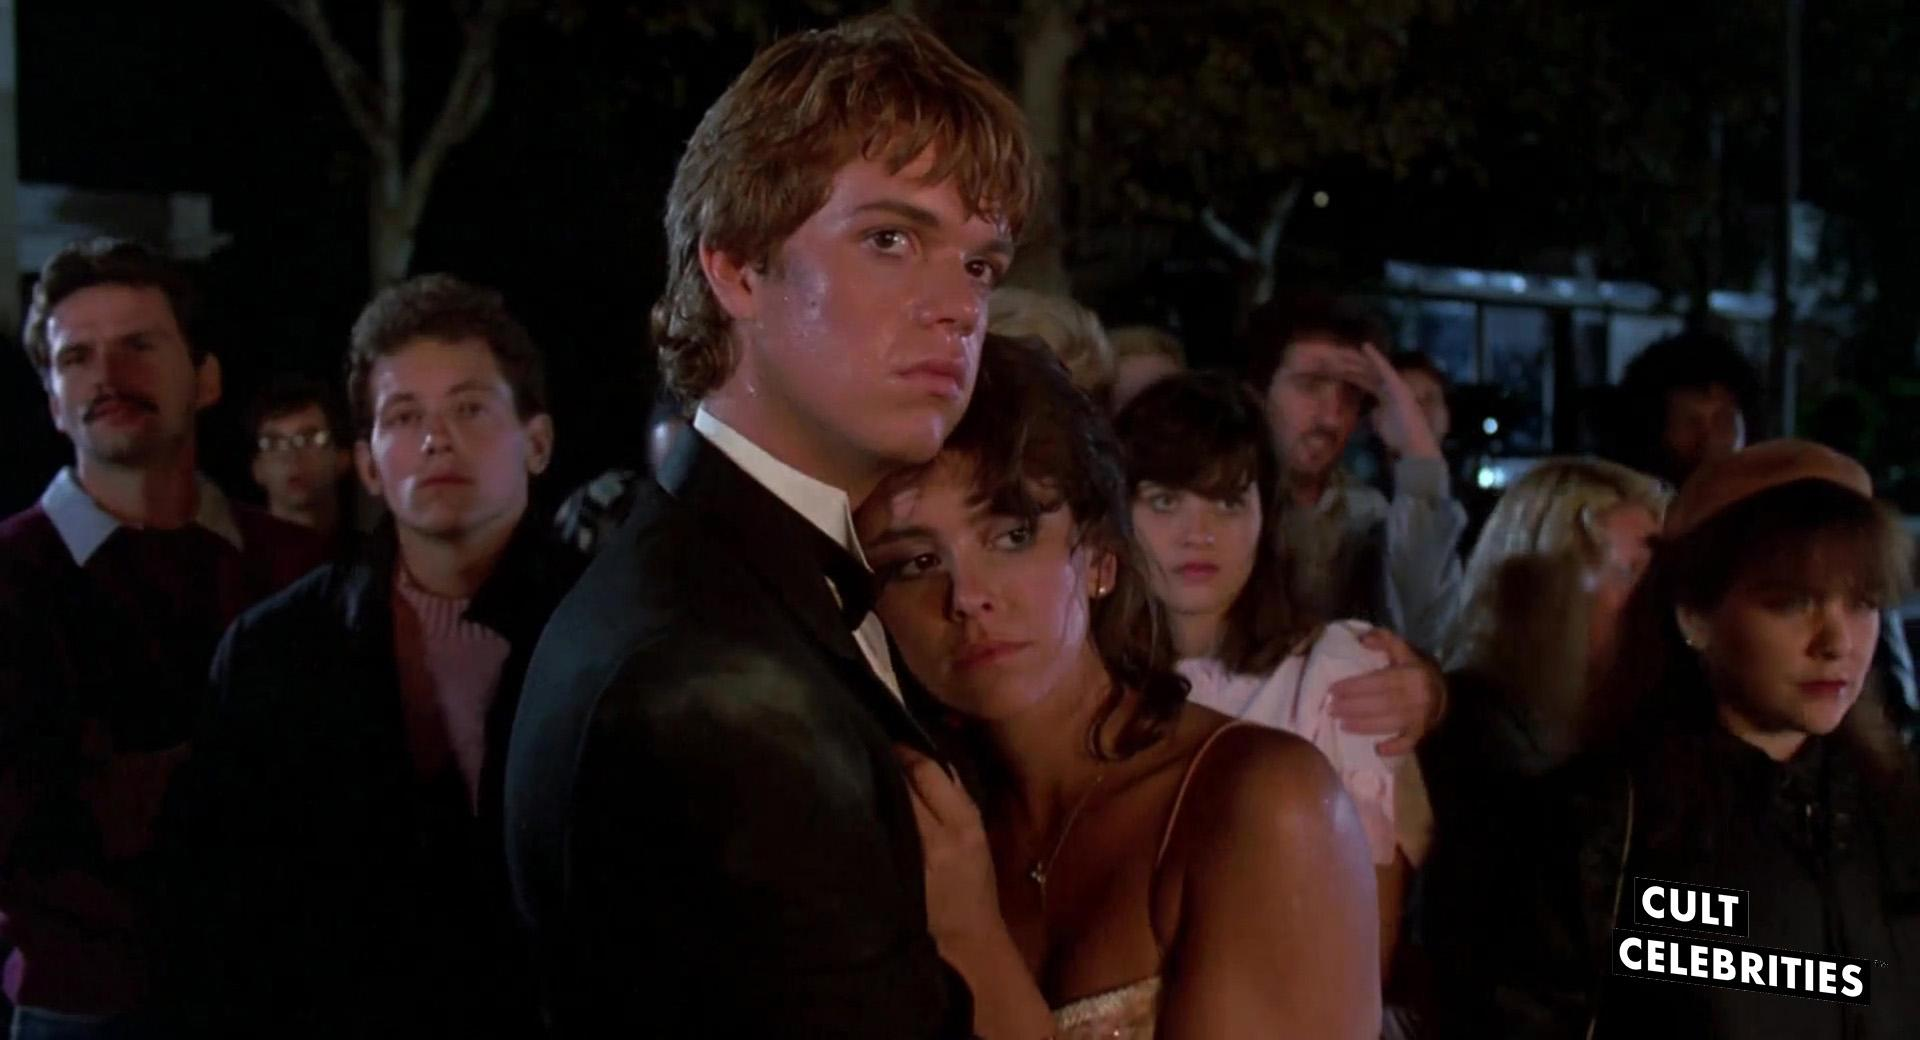 Jason Lively and Jill Whitlow in Night of the Creeps (1986)